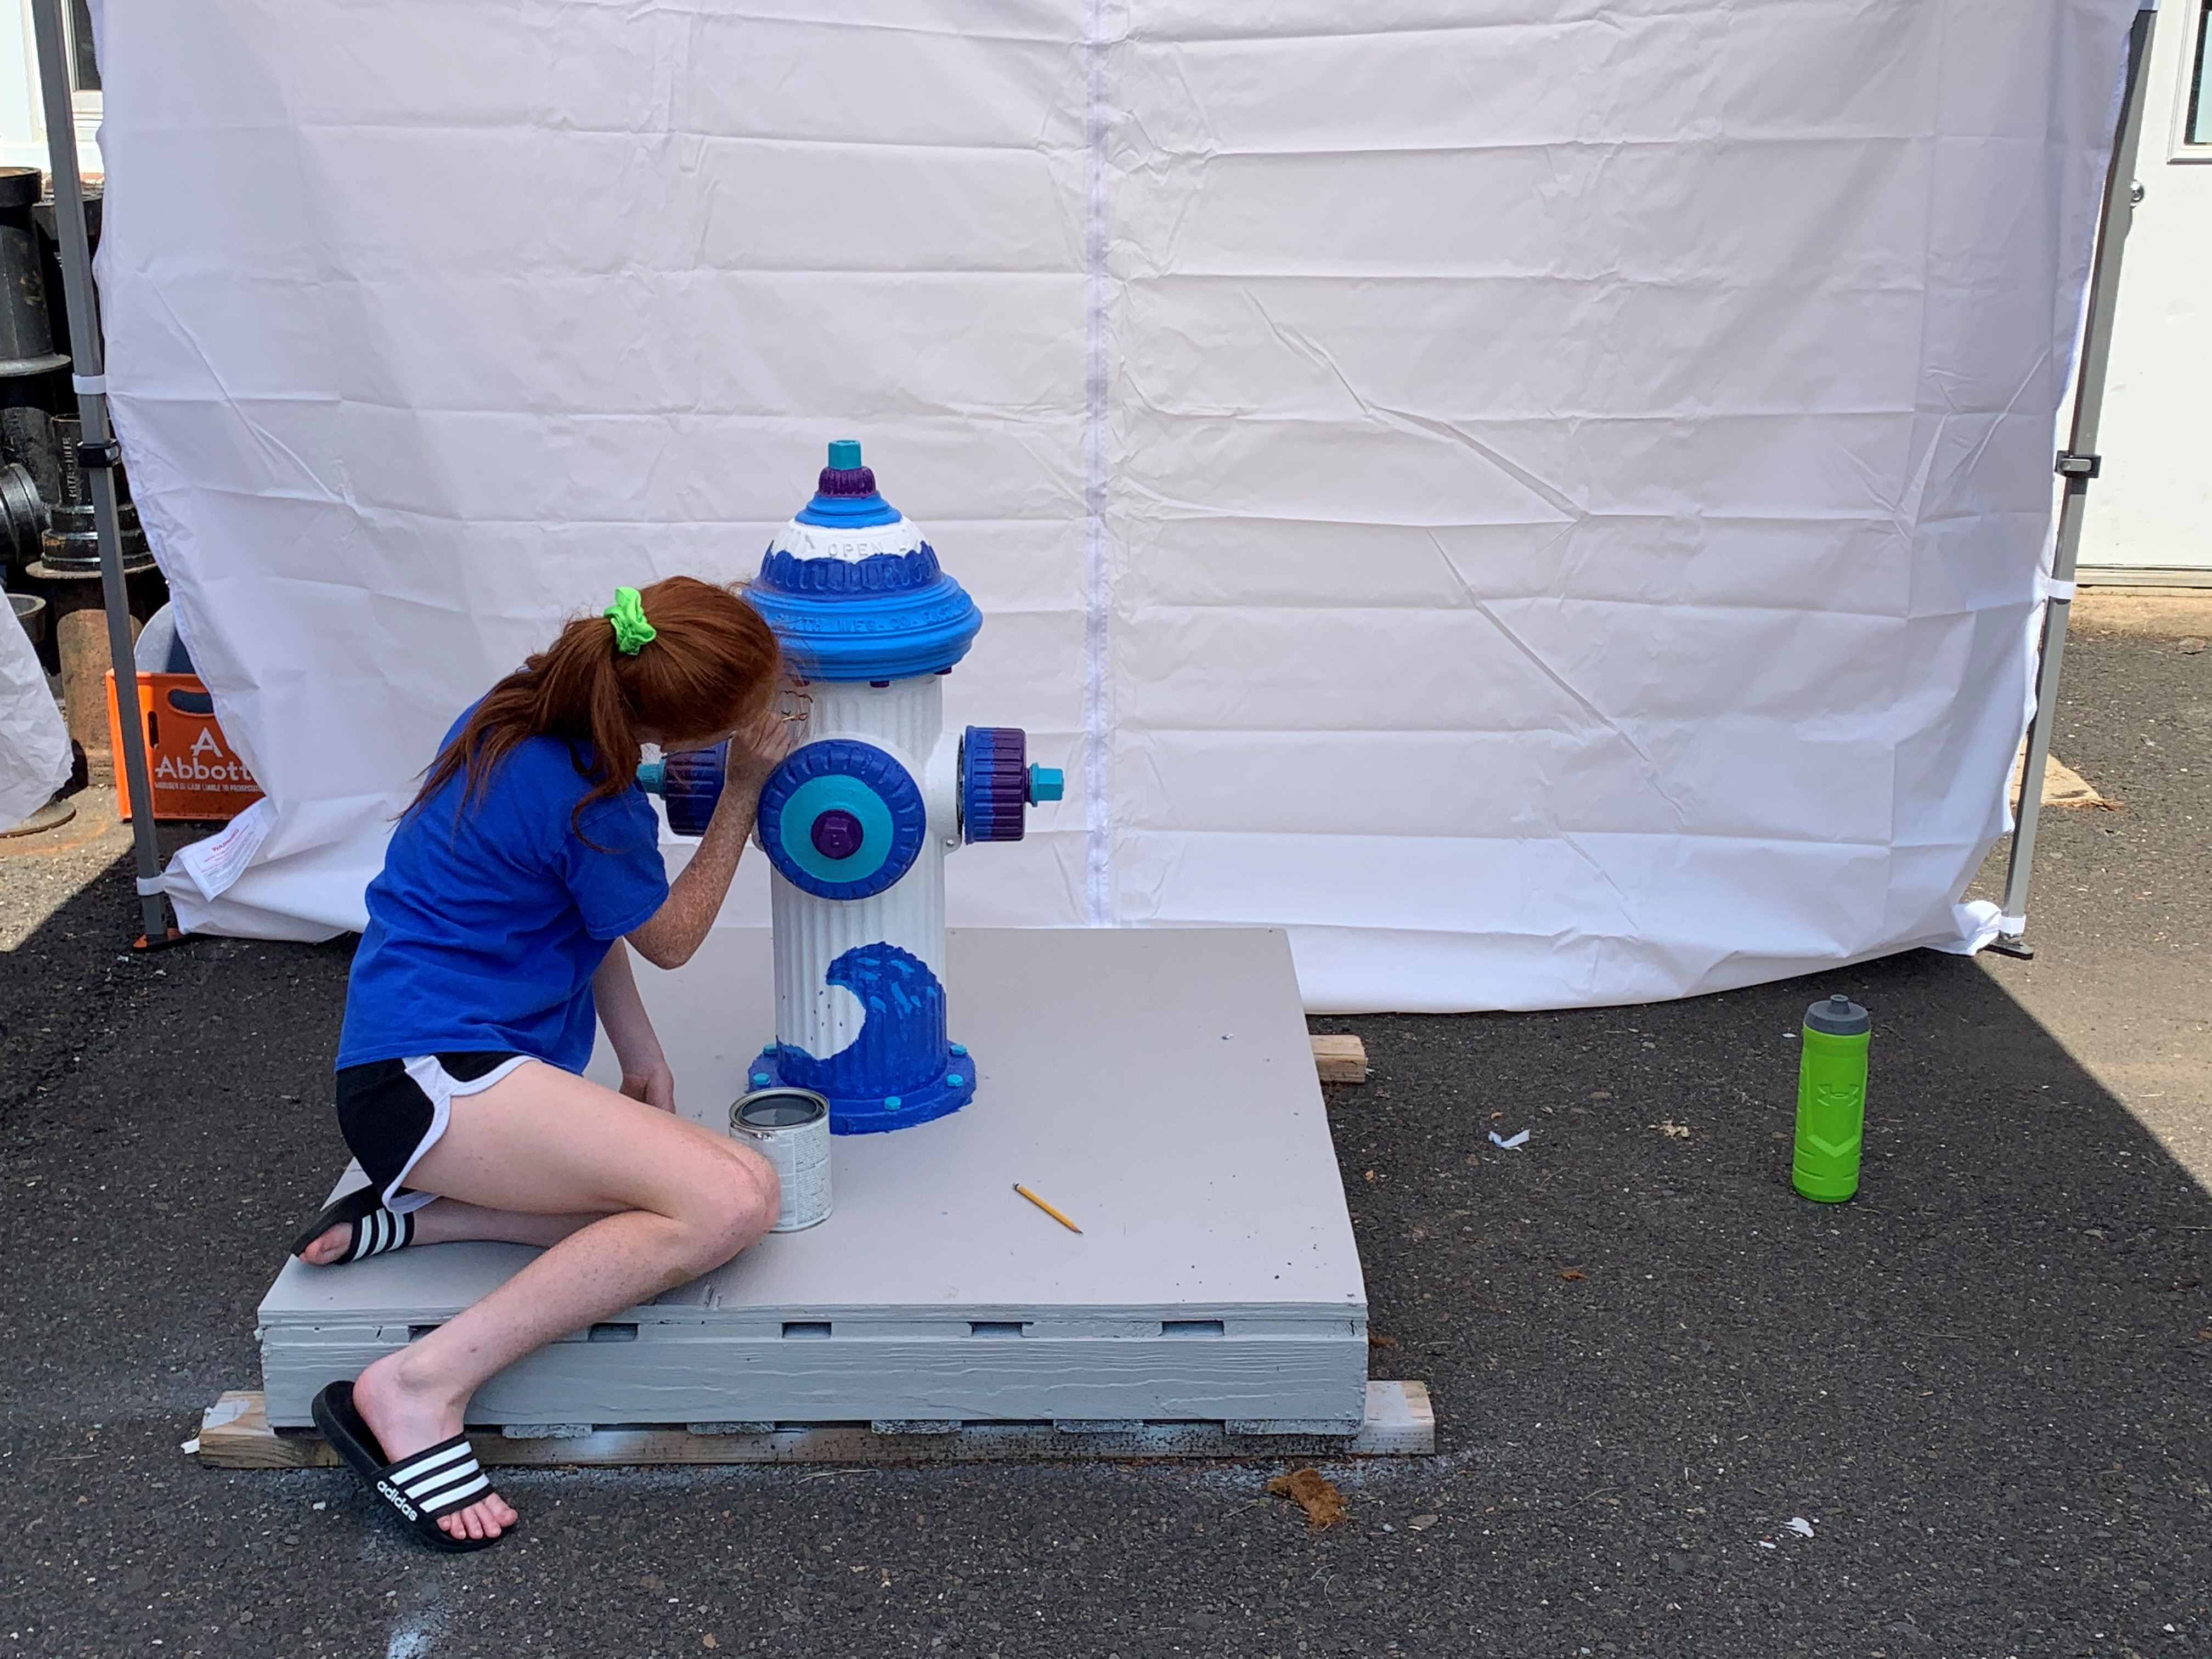 Paint a Hydrant Contest Winner